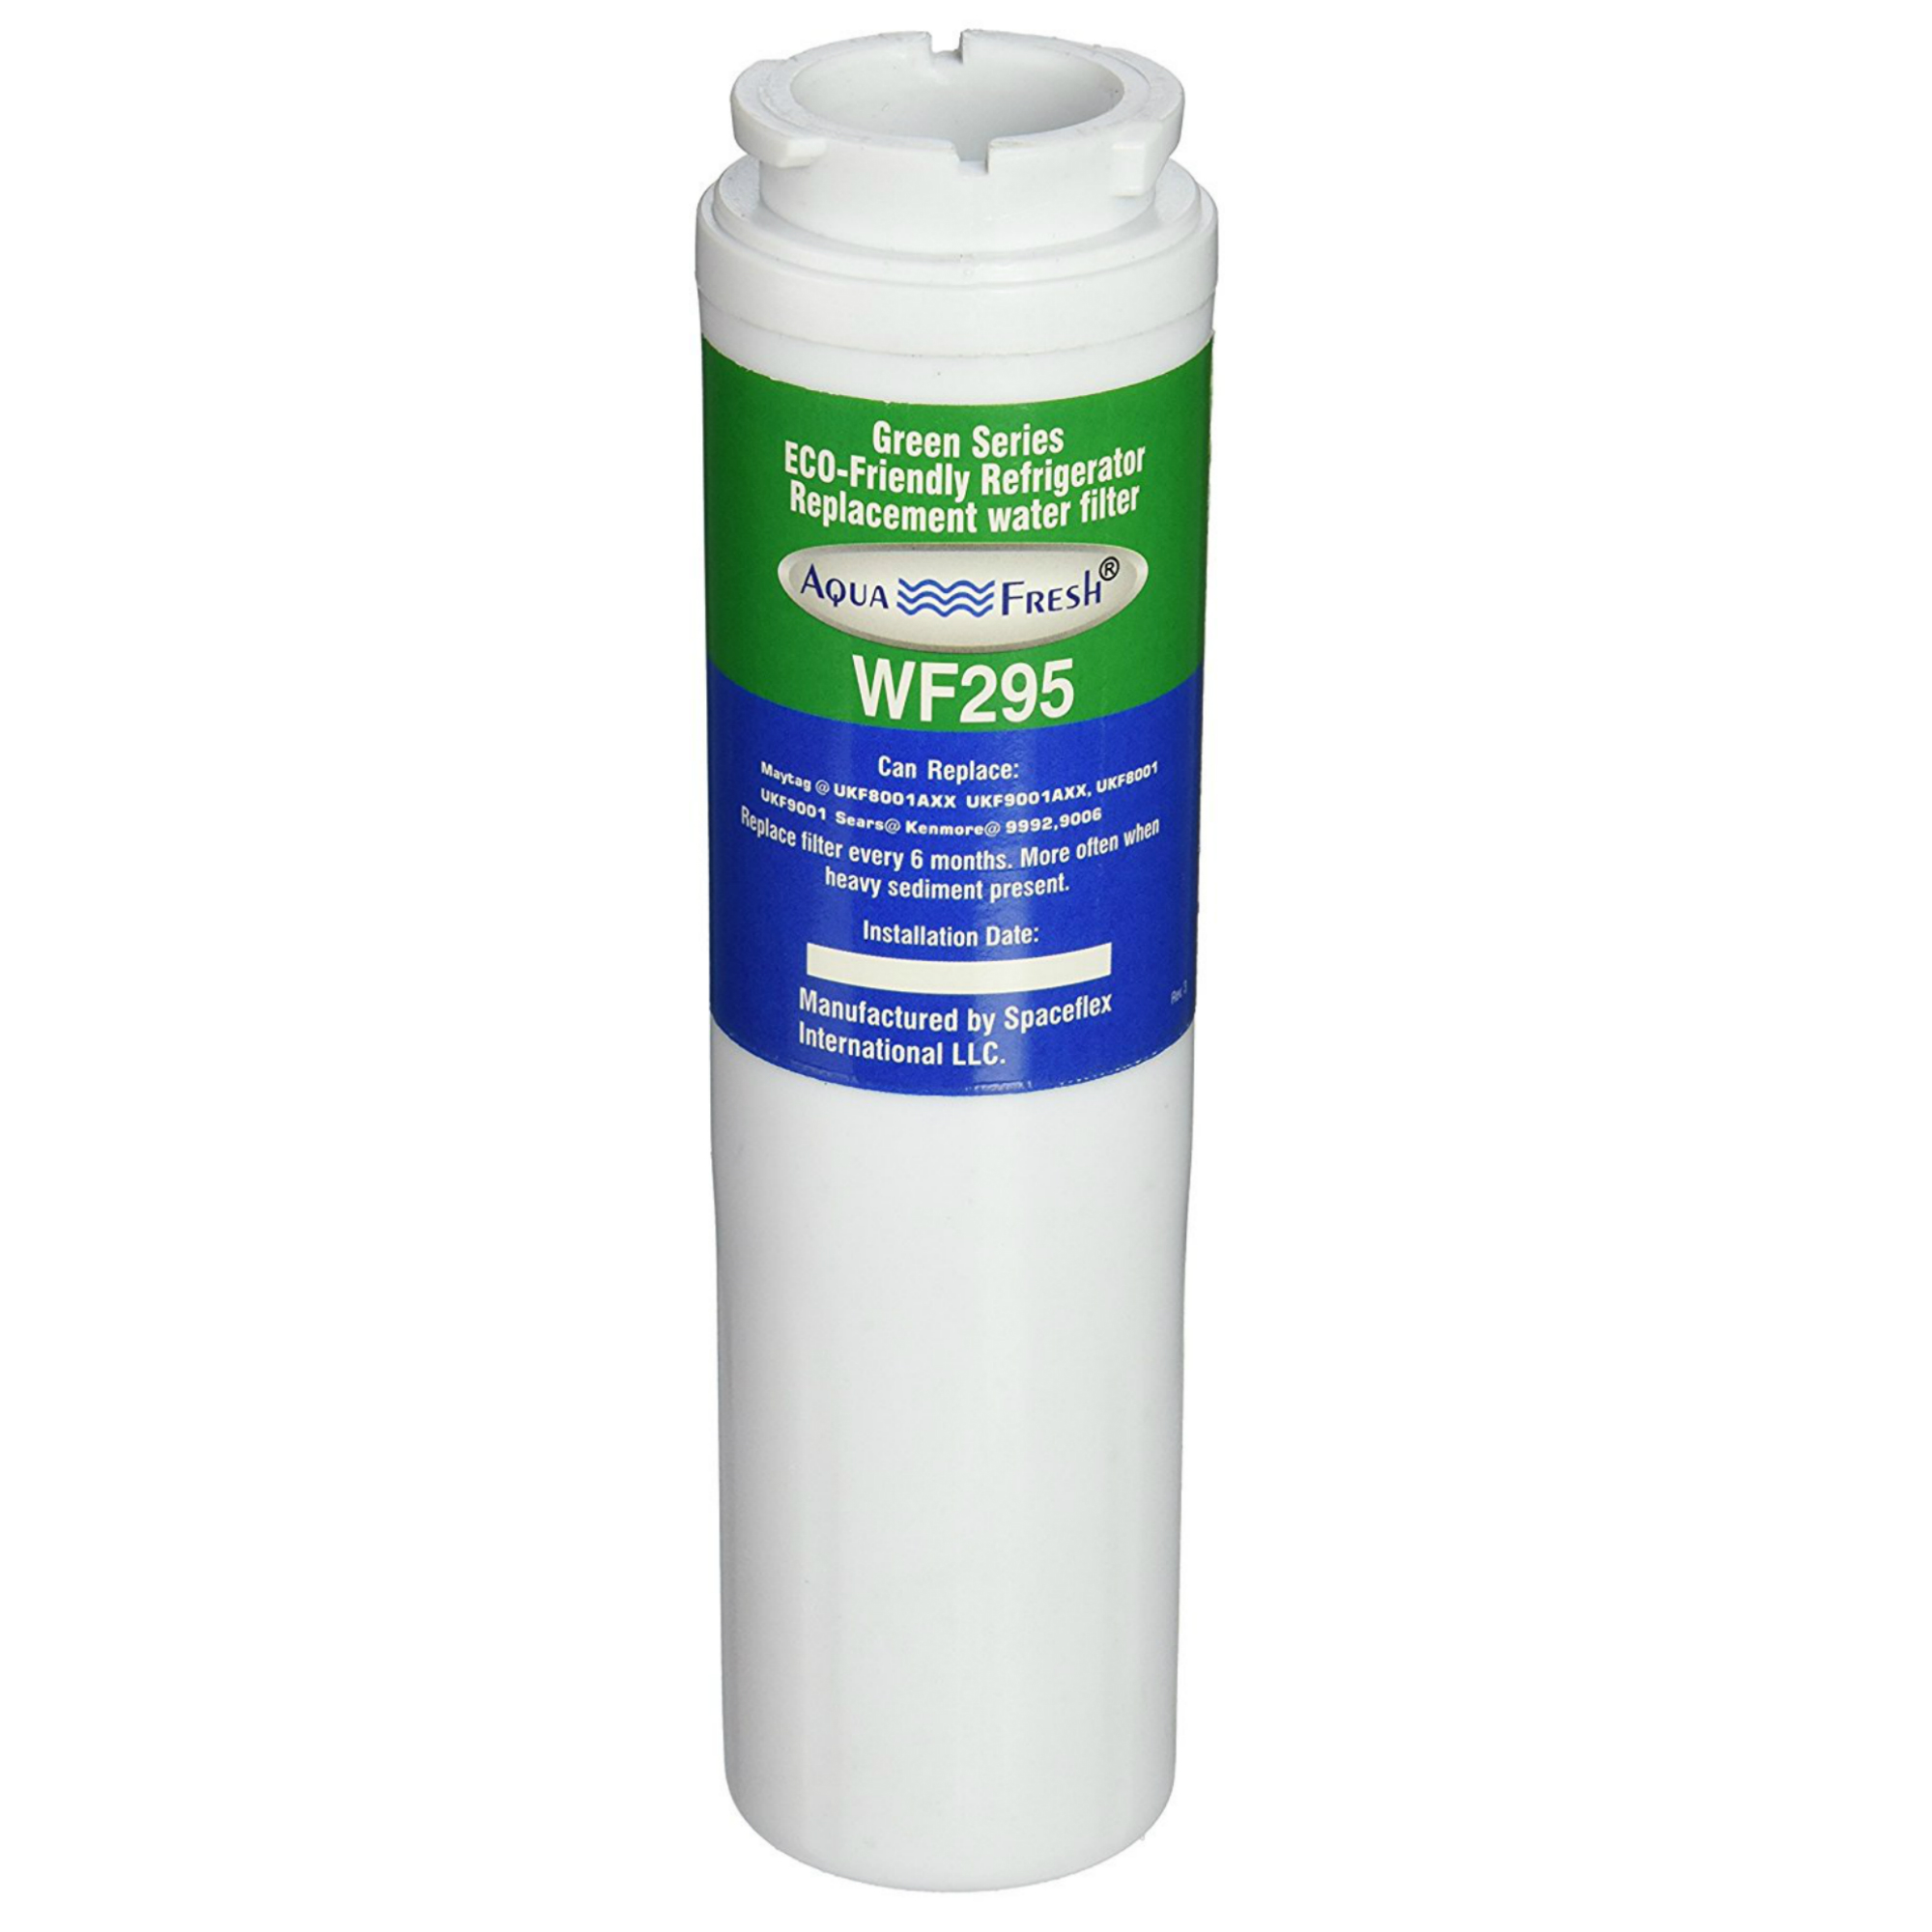 Kitchenaid Krfc300ess Replacement Water Filter For Kitchenaid Krfc300ess Refrigerator